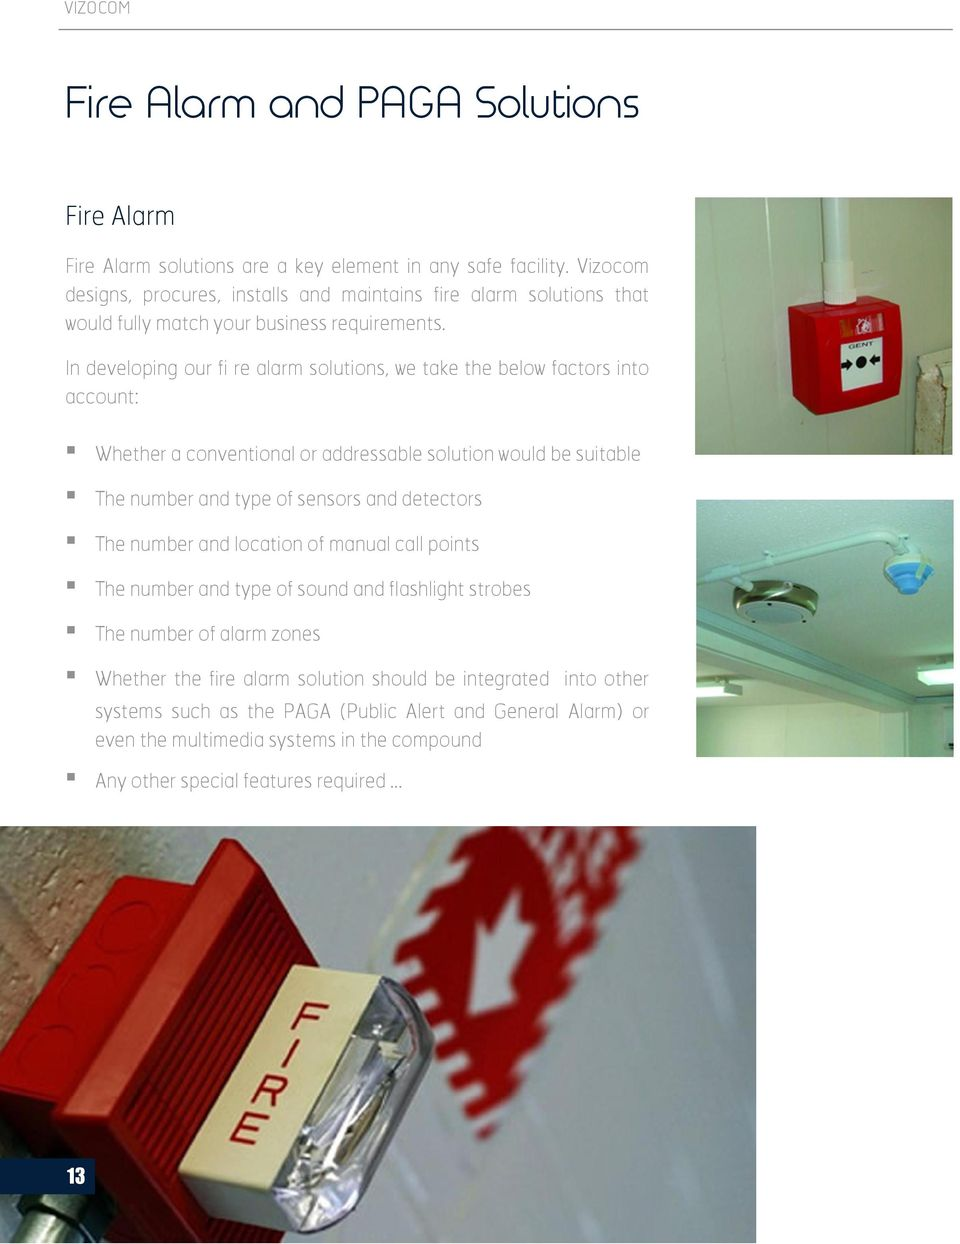 In developing our fi re alarm solutions, we take the below factors into account: Whether a conventional or addressable solution would be suitable The number and type of sensors and